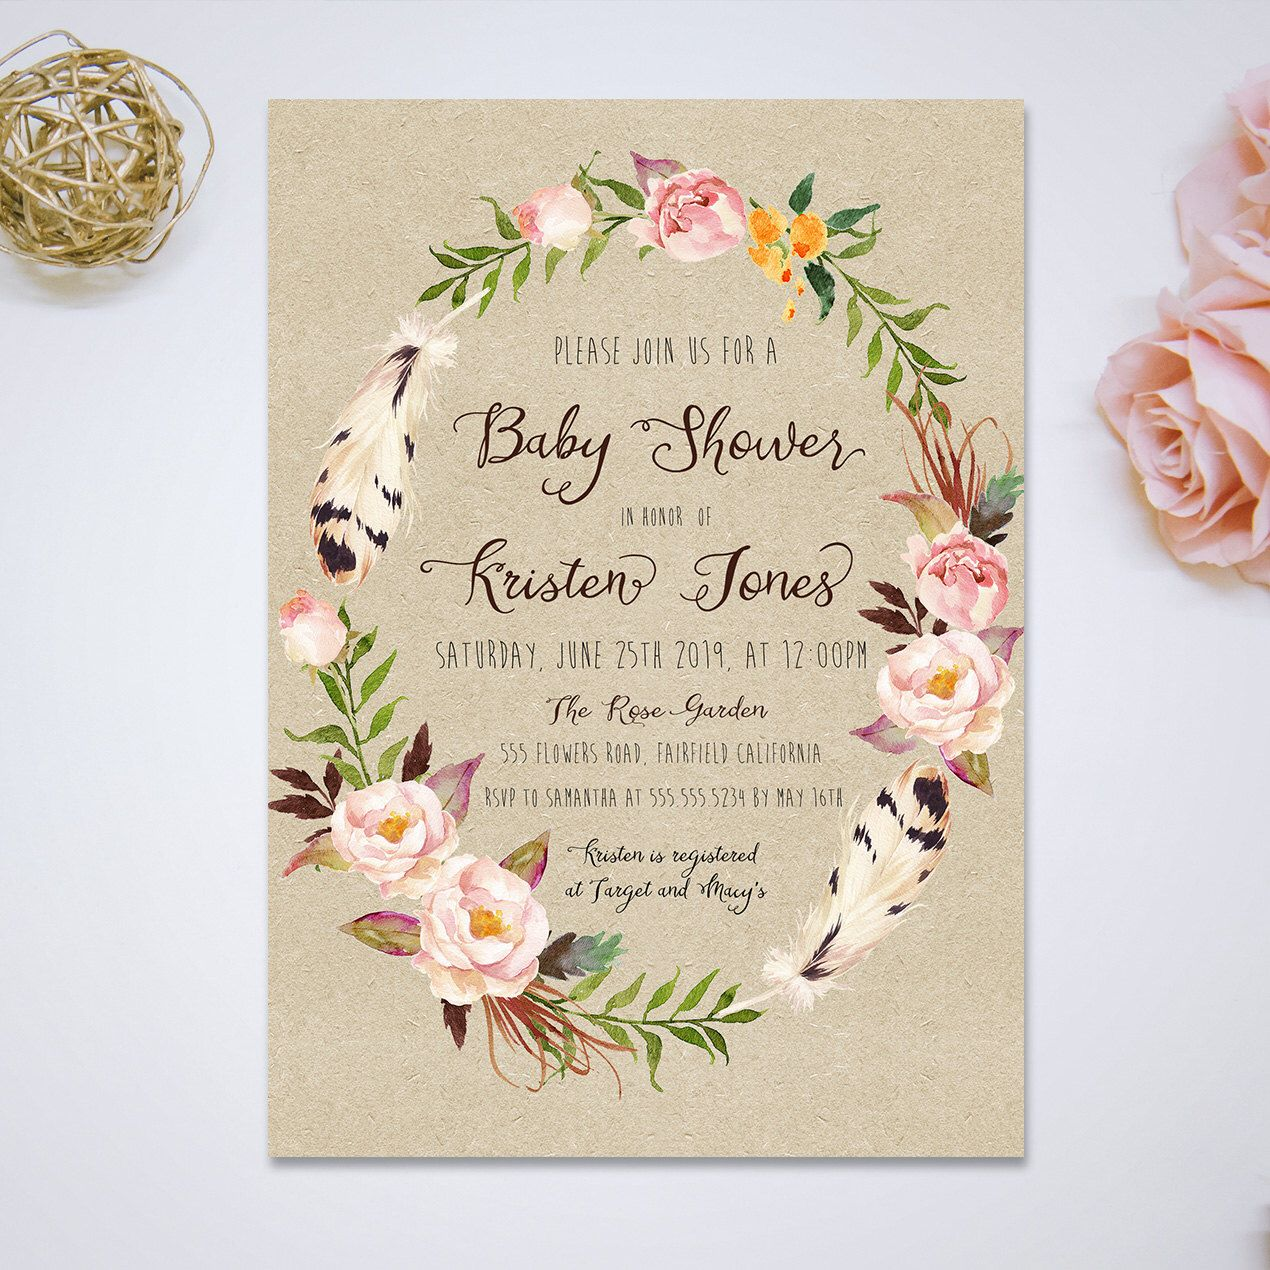 Pin by sydney steele on baby pinterest pink watercolor printable vintage pink watercolor floral baby shower invitation baby shower card flowers and feathers baby shower diy filmwisefo Image collections